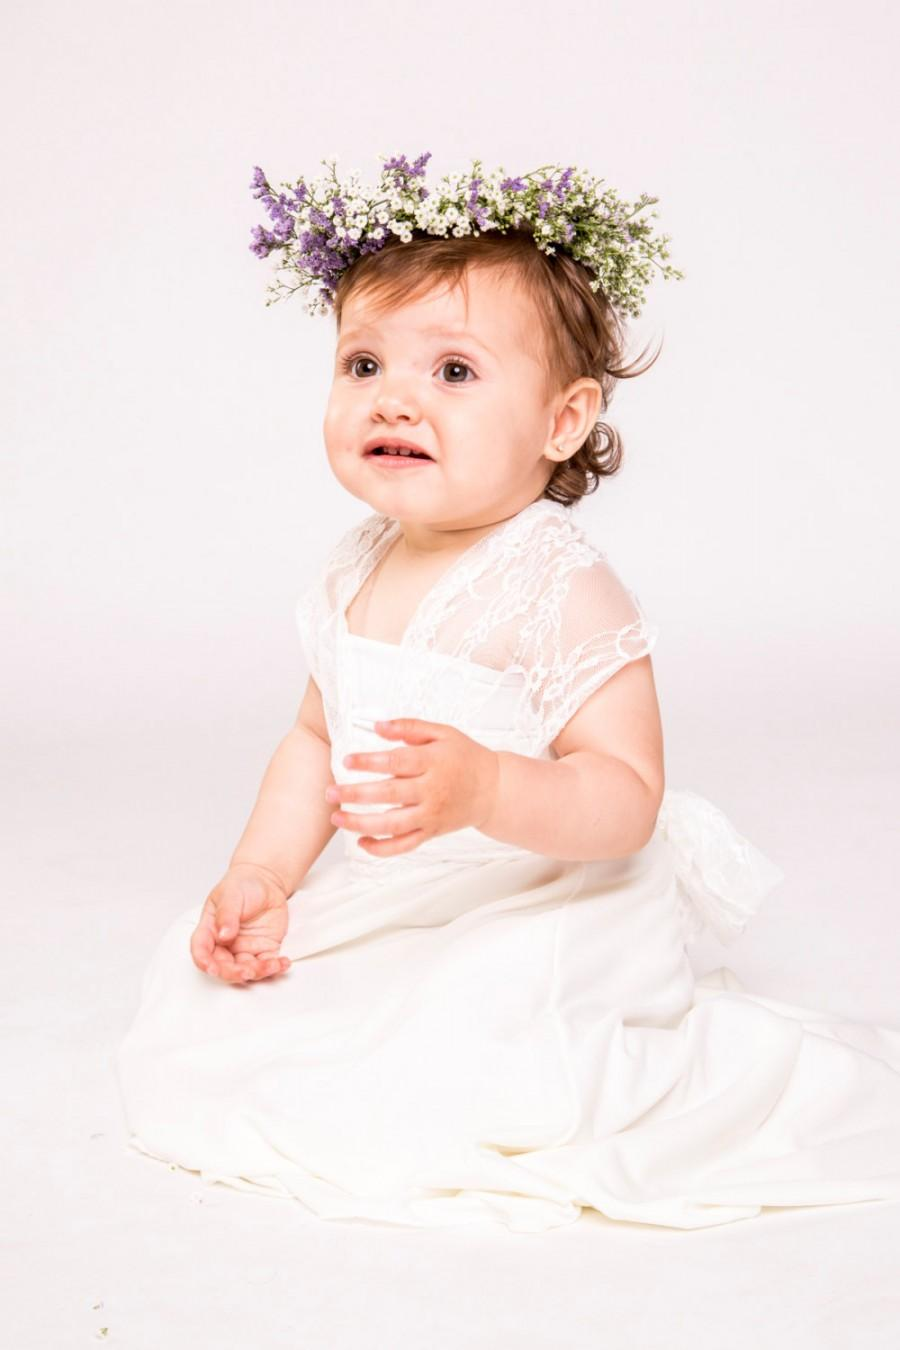 Wedding - Flower girl dress, baby dress, baby flower girl dress, flower girl lace dress, baby bridesmaid, flower girl dresses, wrap dress, flower girl